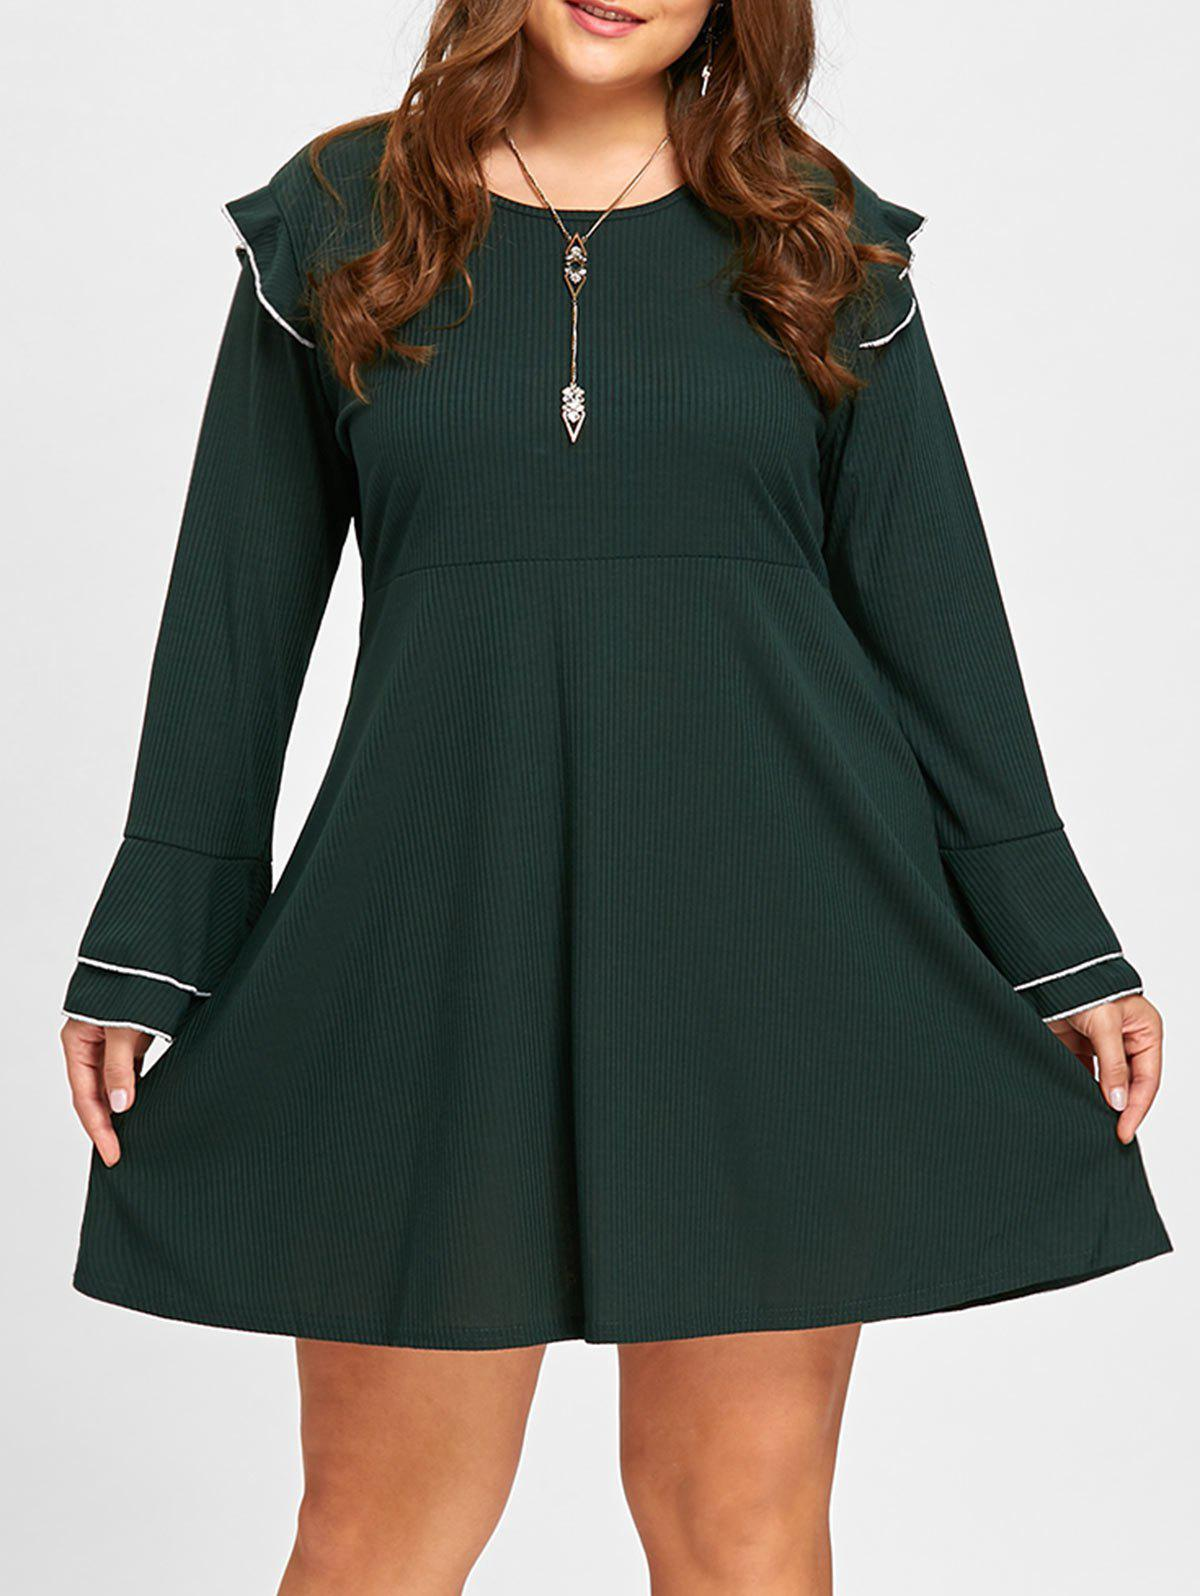 High Waist Plus Size Ruffle DressWOMEN<br><br>Size: 4XL; Color: BLACKISH GREEN; Style: Cute; Material: Polyester,Spandex; Silhouette: Straight; Dresses Length: Mini; Neckline: Round Collar; Sleeve Length: Long Sleeves; Pattern Type: Others; With Belt: No; Season: Fall,Spring; Weight: 0.4600kg; Package Contents: 1 x Dress;